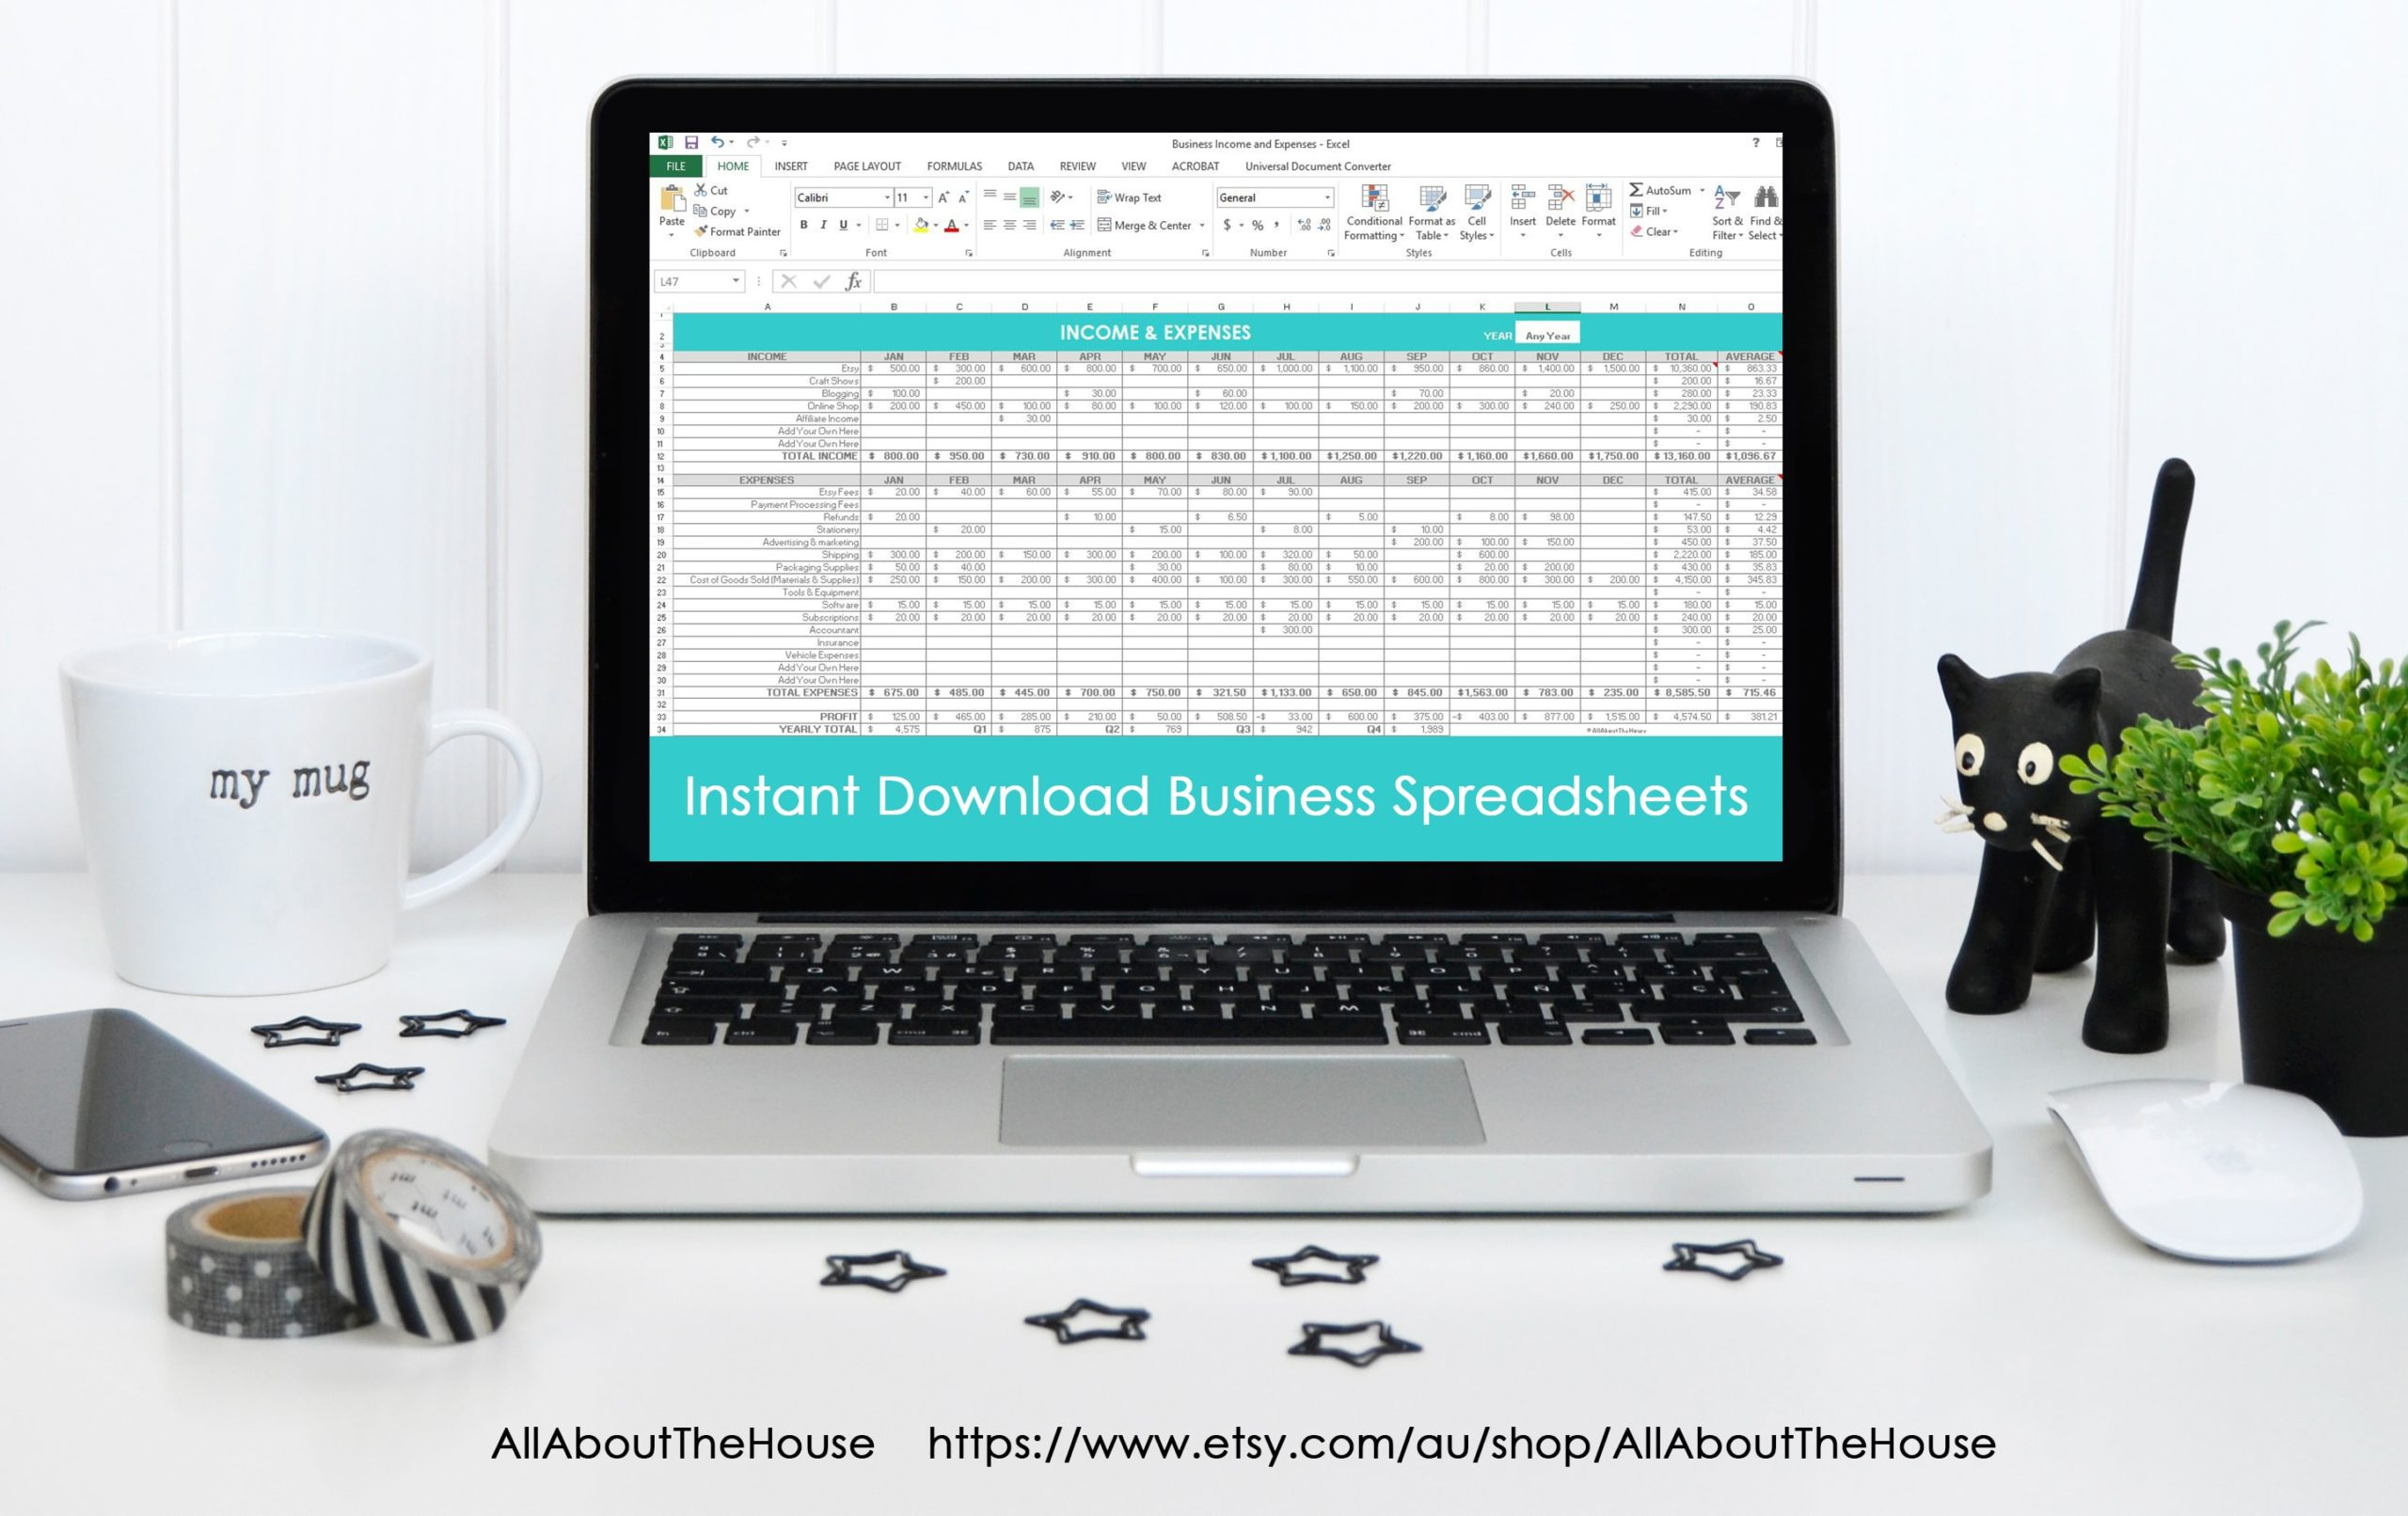 business income and expenses spreadsheet, etsy, online, profit, loss, accounting, tax time, shop financial, etsy seller tool, shop management, trend, reporting, tax reporting-min